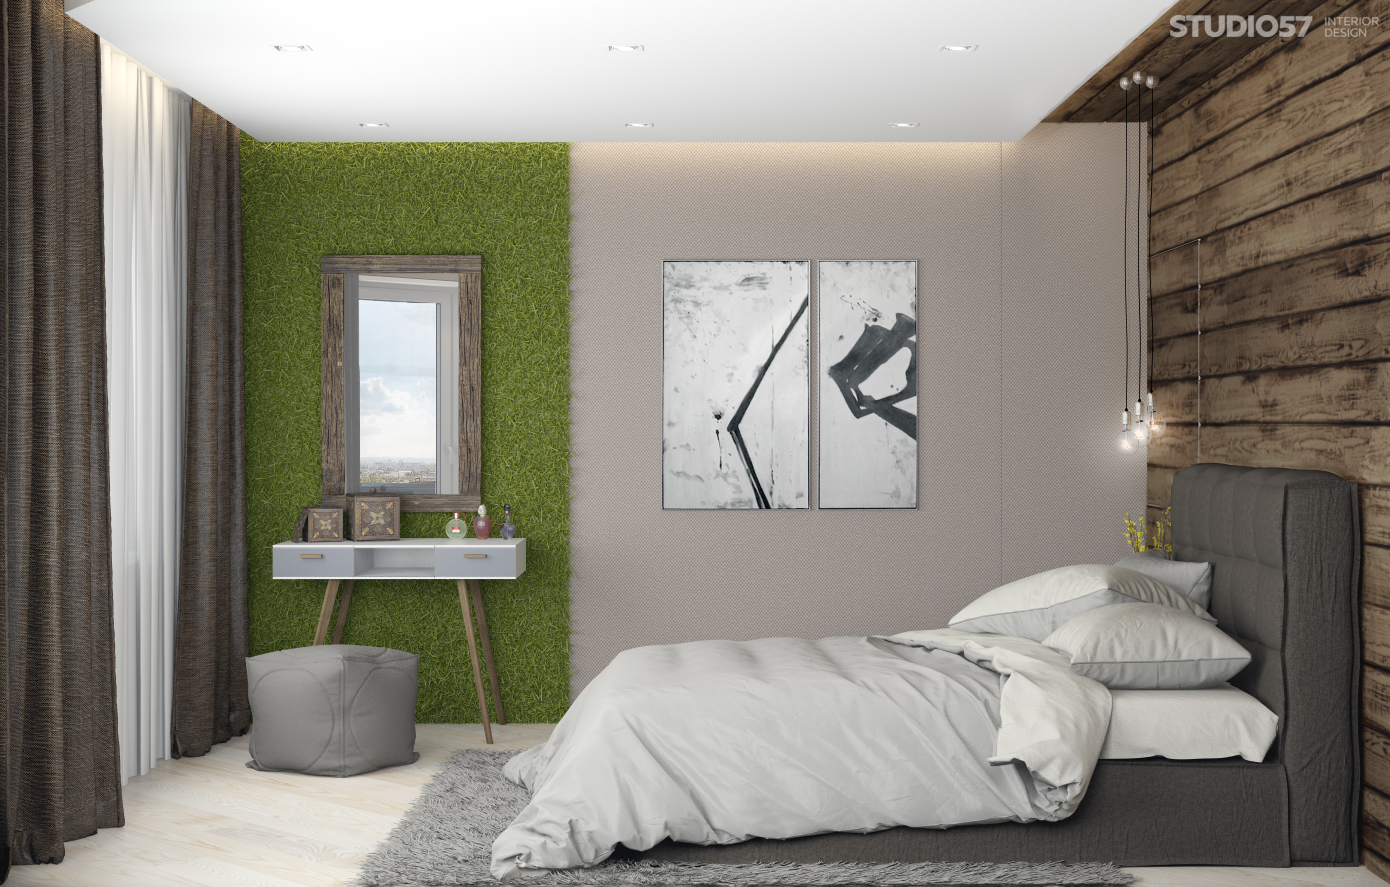 Bedroom interior design in eco style photo